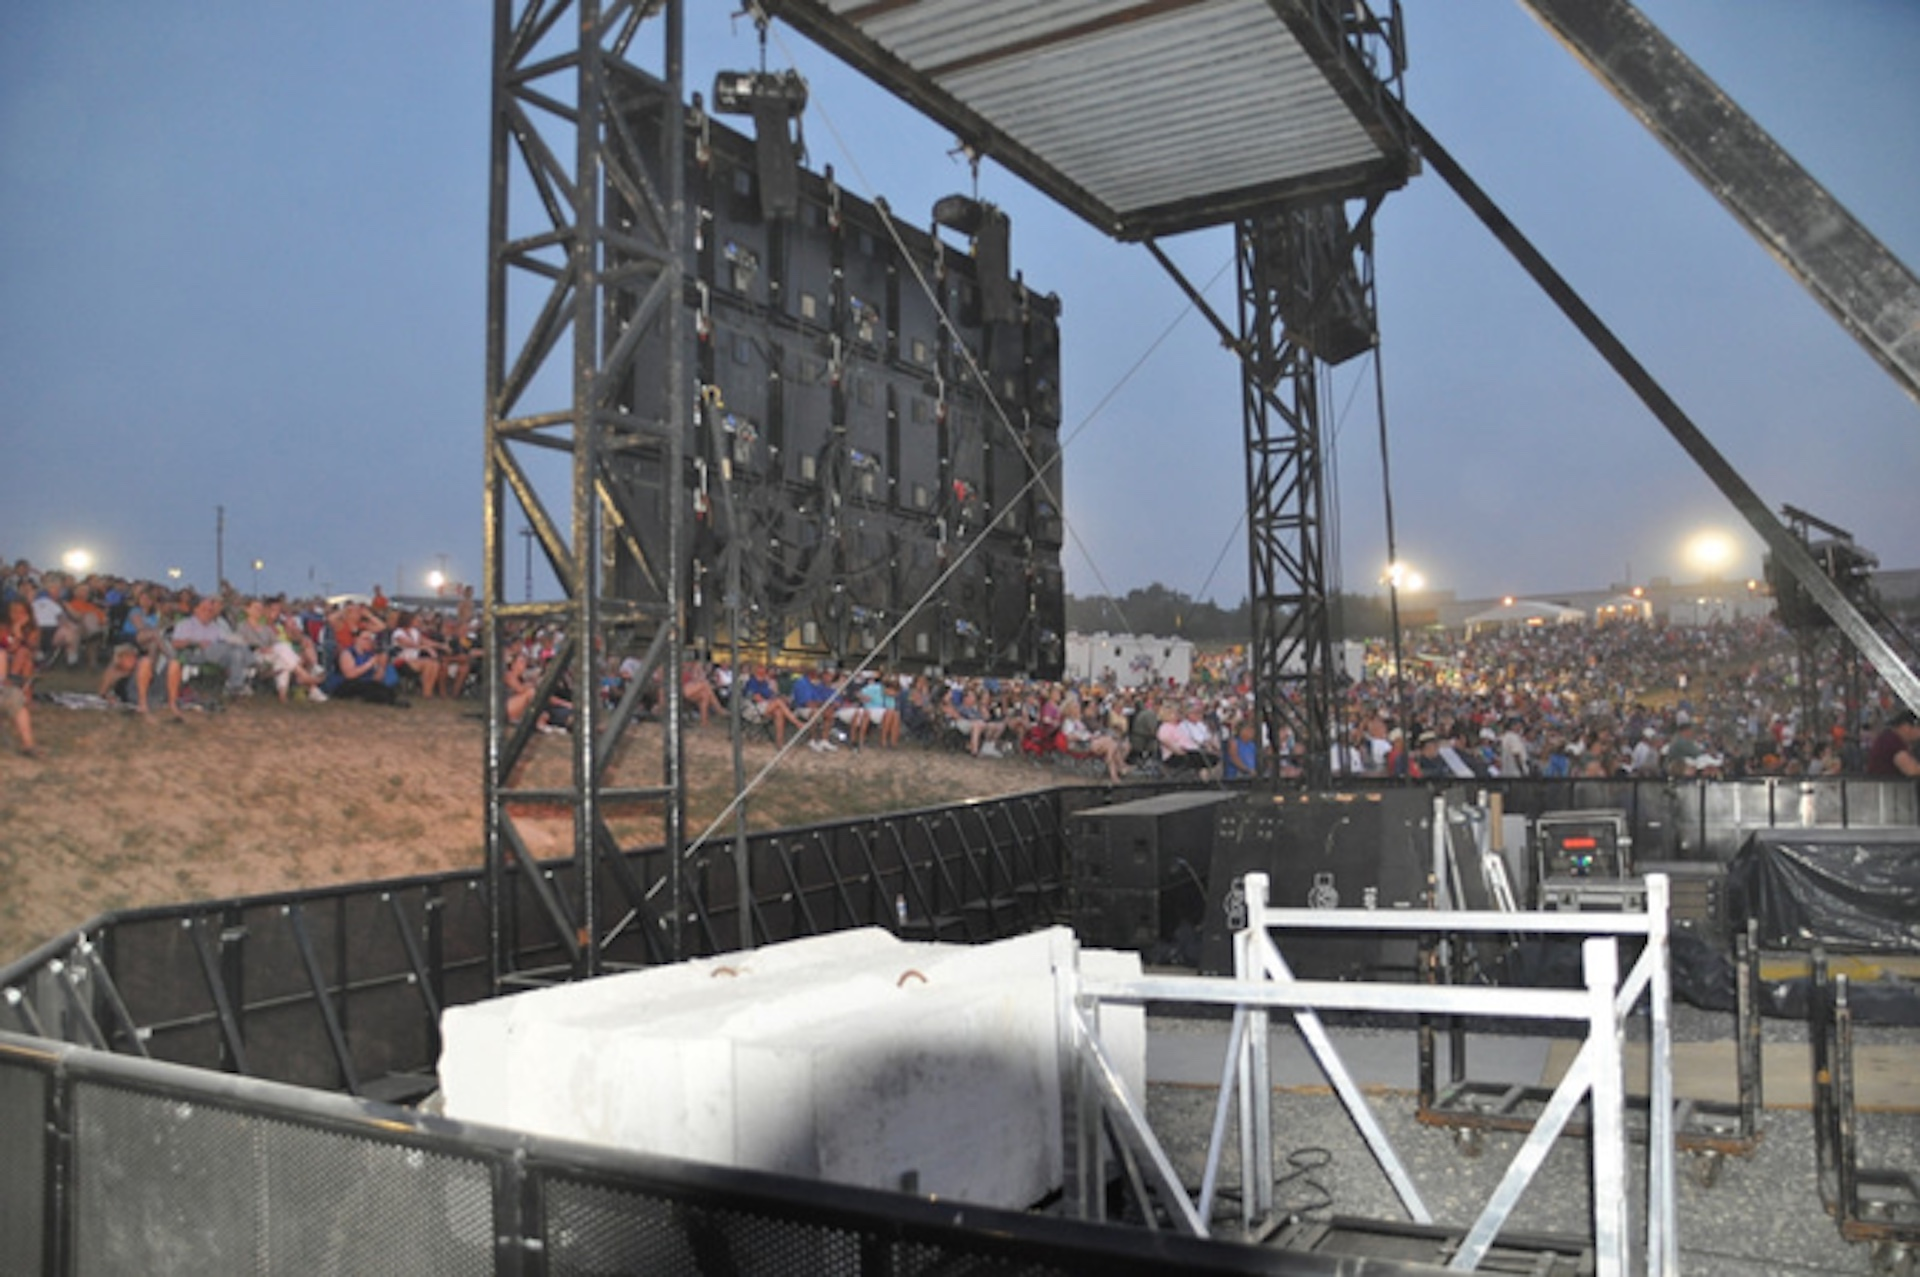 LED Screen Rental for Outdoor Concerts